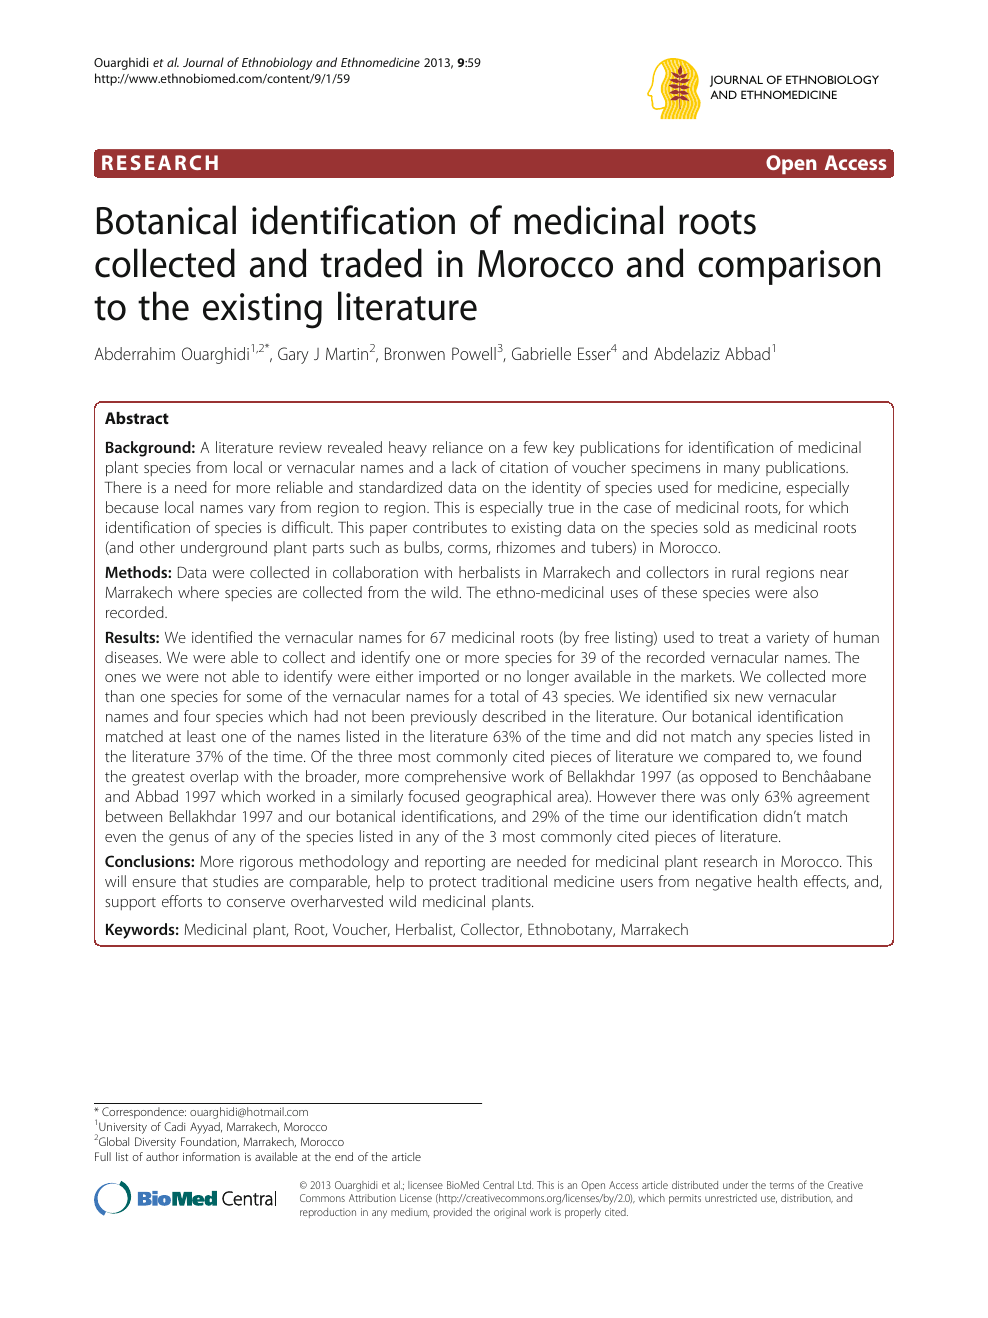 Difference Niveau Entre 2 Pieces botanical identification of medicinal roots collected and